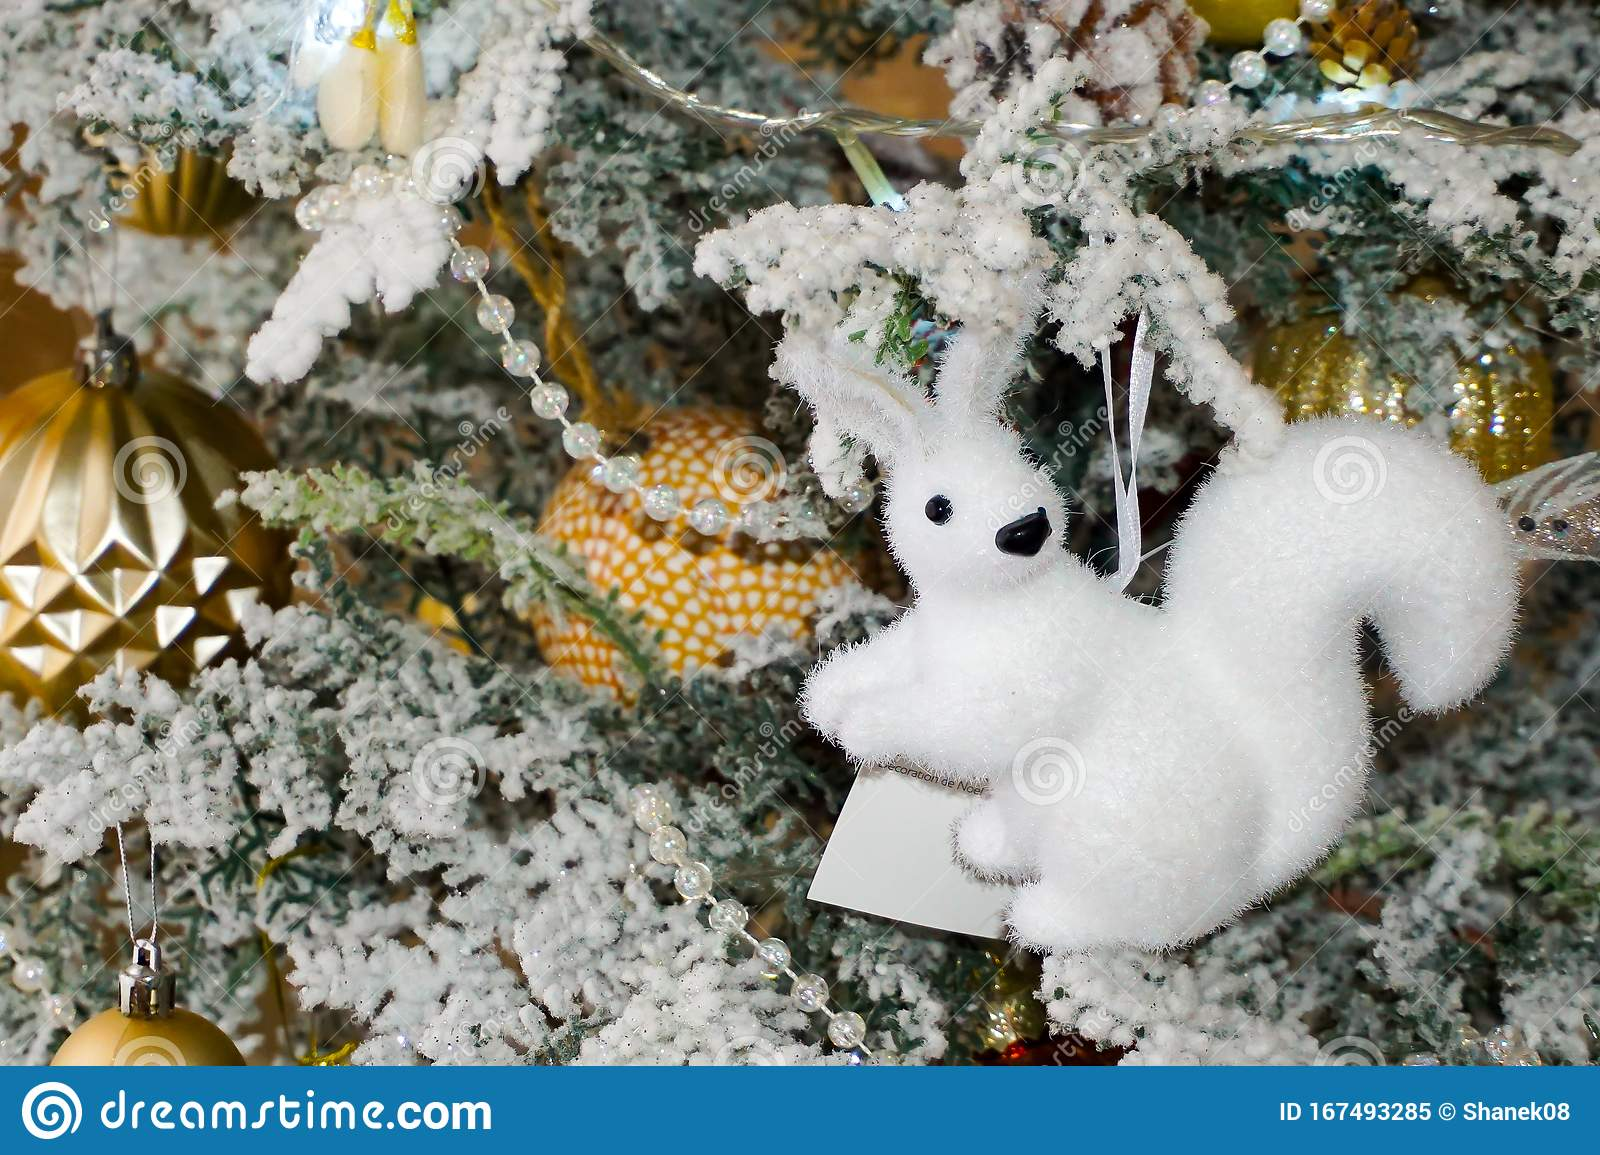 Christmas Tree Decorations Christmas Toys Squirrel Butterfly